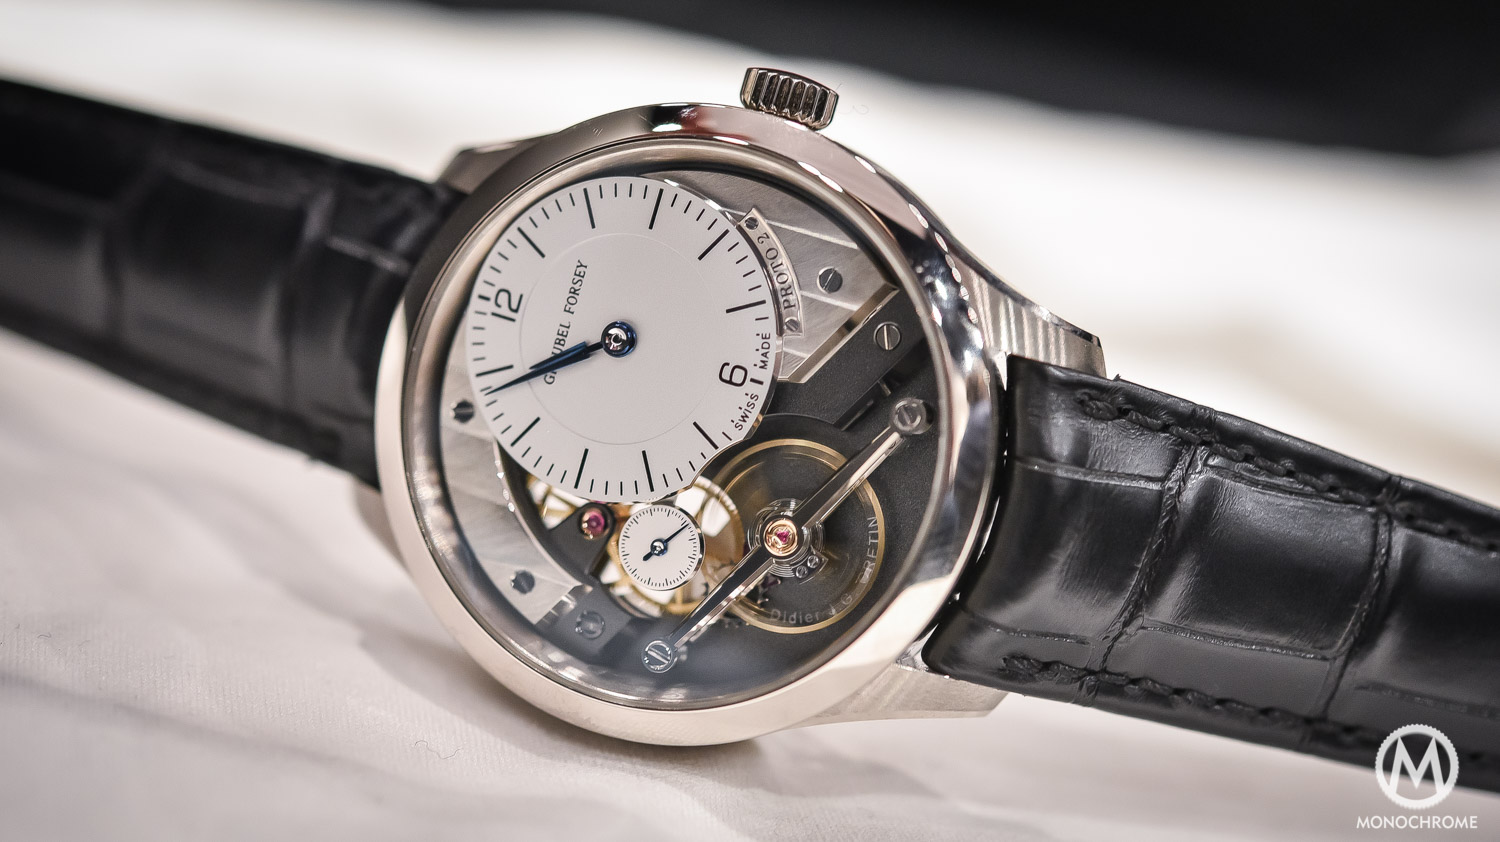 Greubel Forsey Signature 1 - Stainless steel entry level - SIHH 2016 - full case